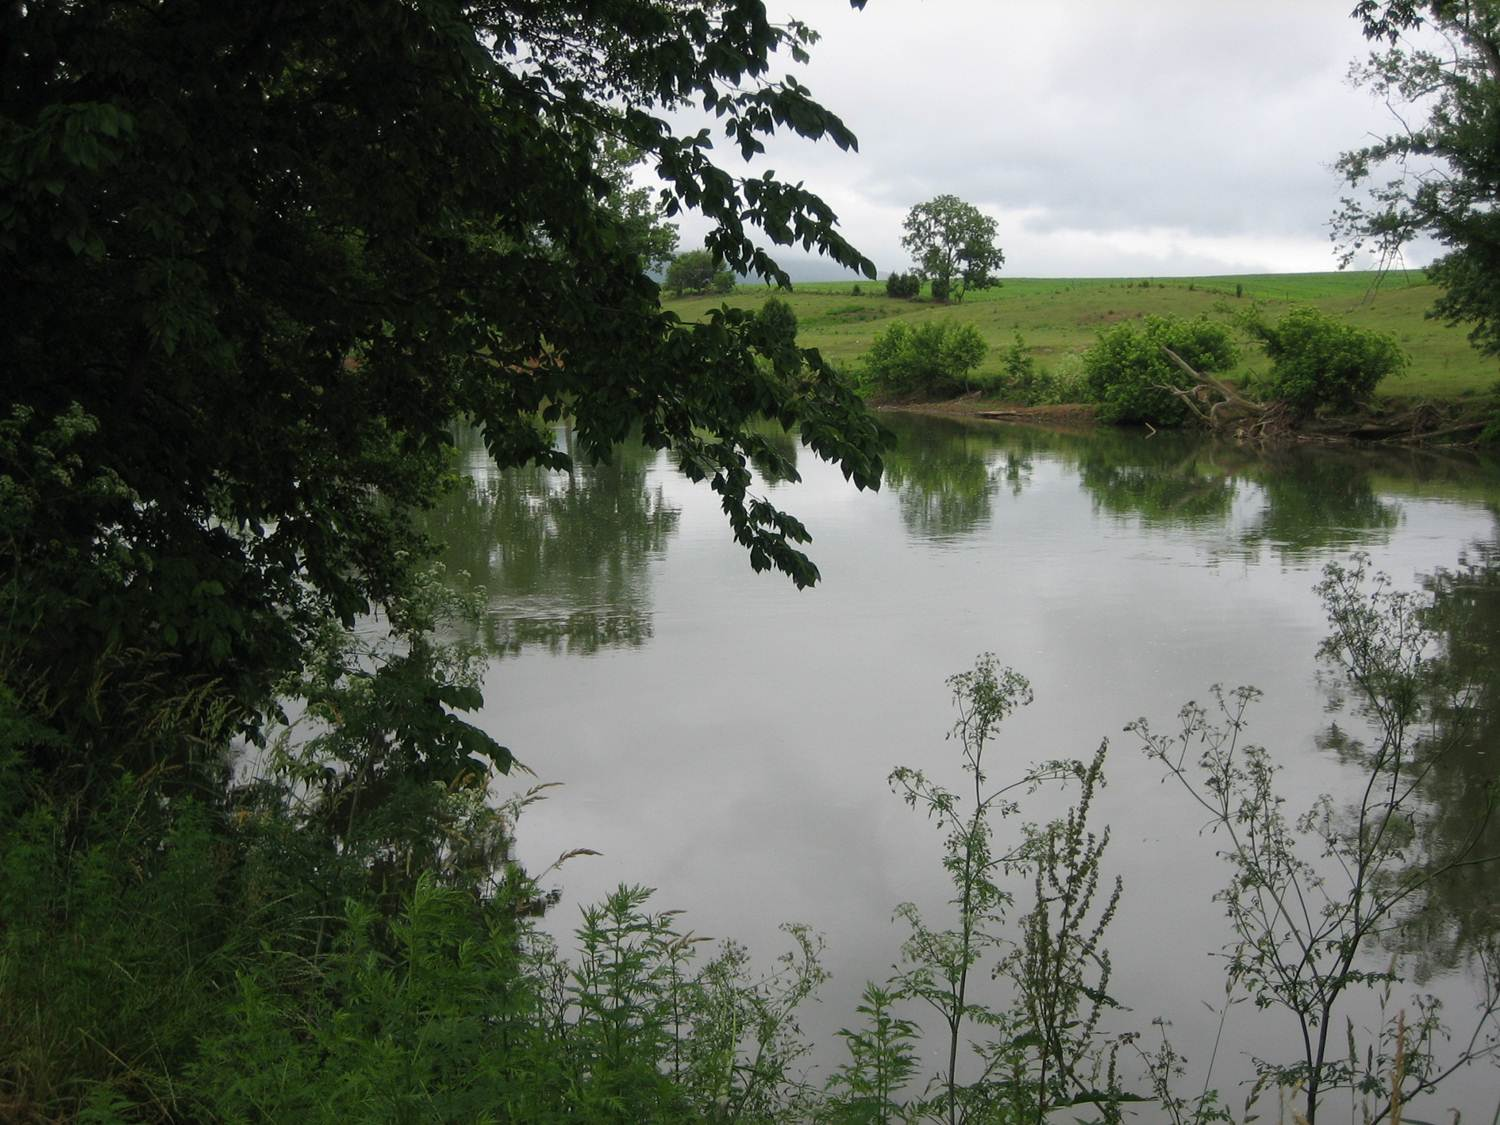 North River at JMU farm